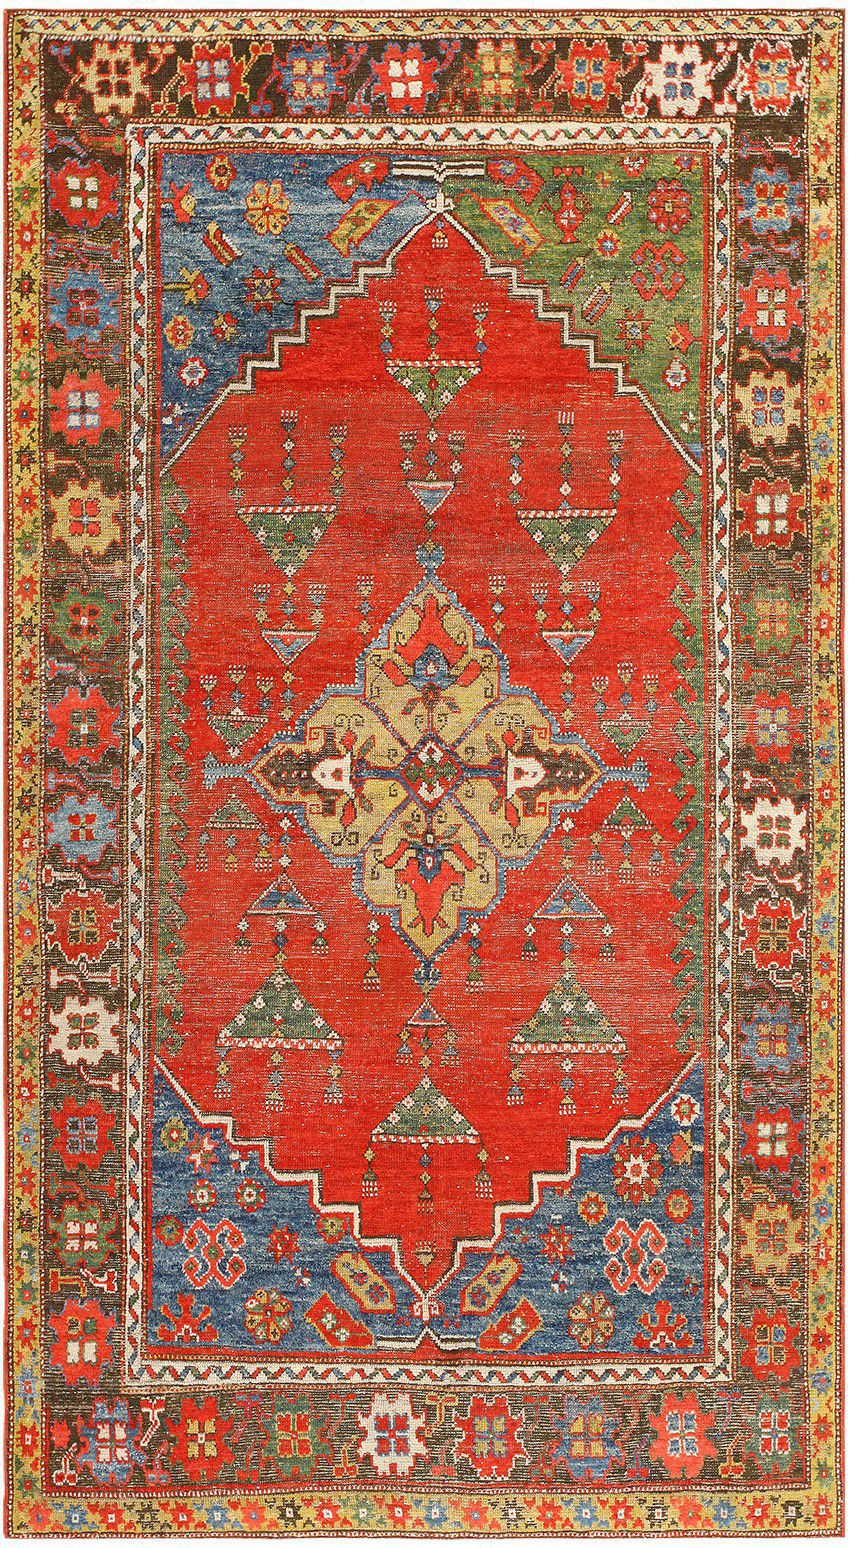 Amazing turkish rugs antique turkish konia rug 47394 detail/large view jqlarje